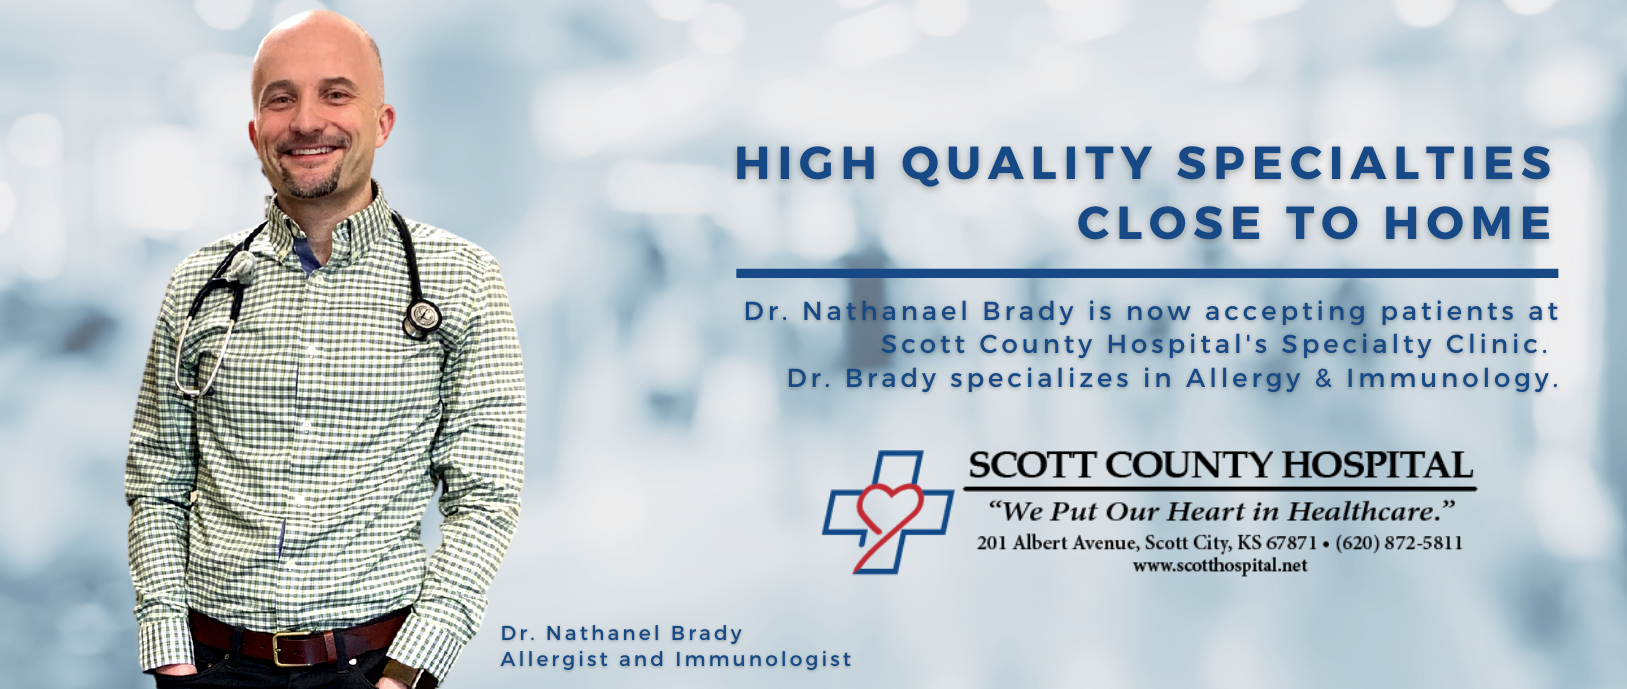 High Quality Specialties Close to home. Dr. Nathanael Brady is now accepting patients at Scott County Hospital's Specialty Clinic.